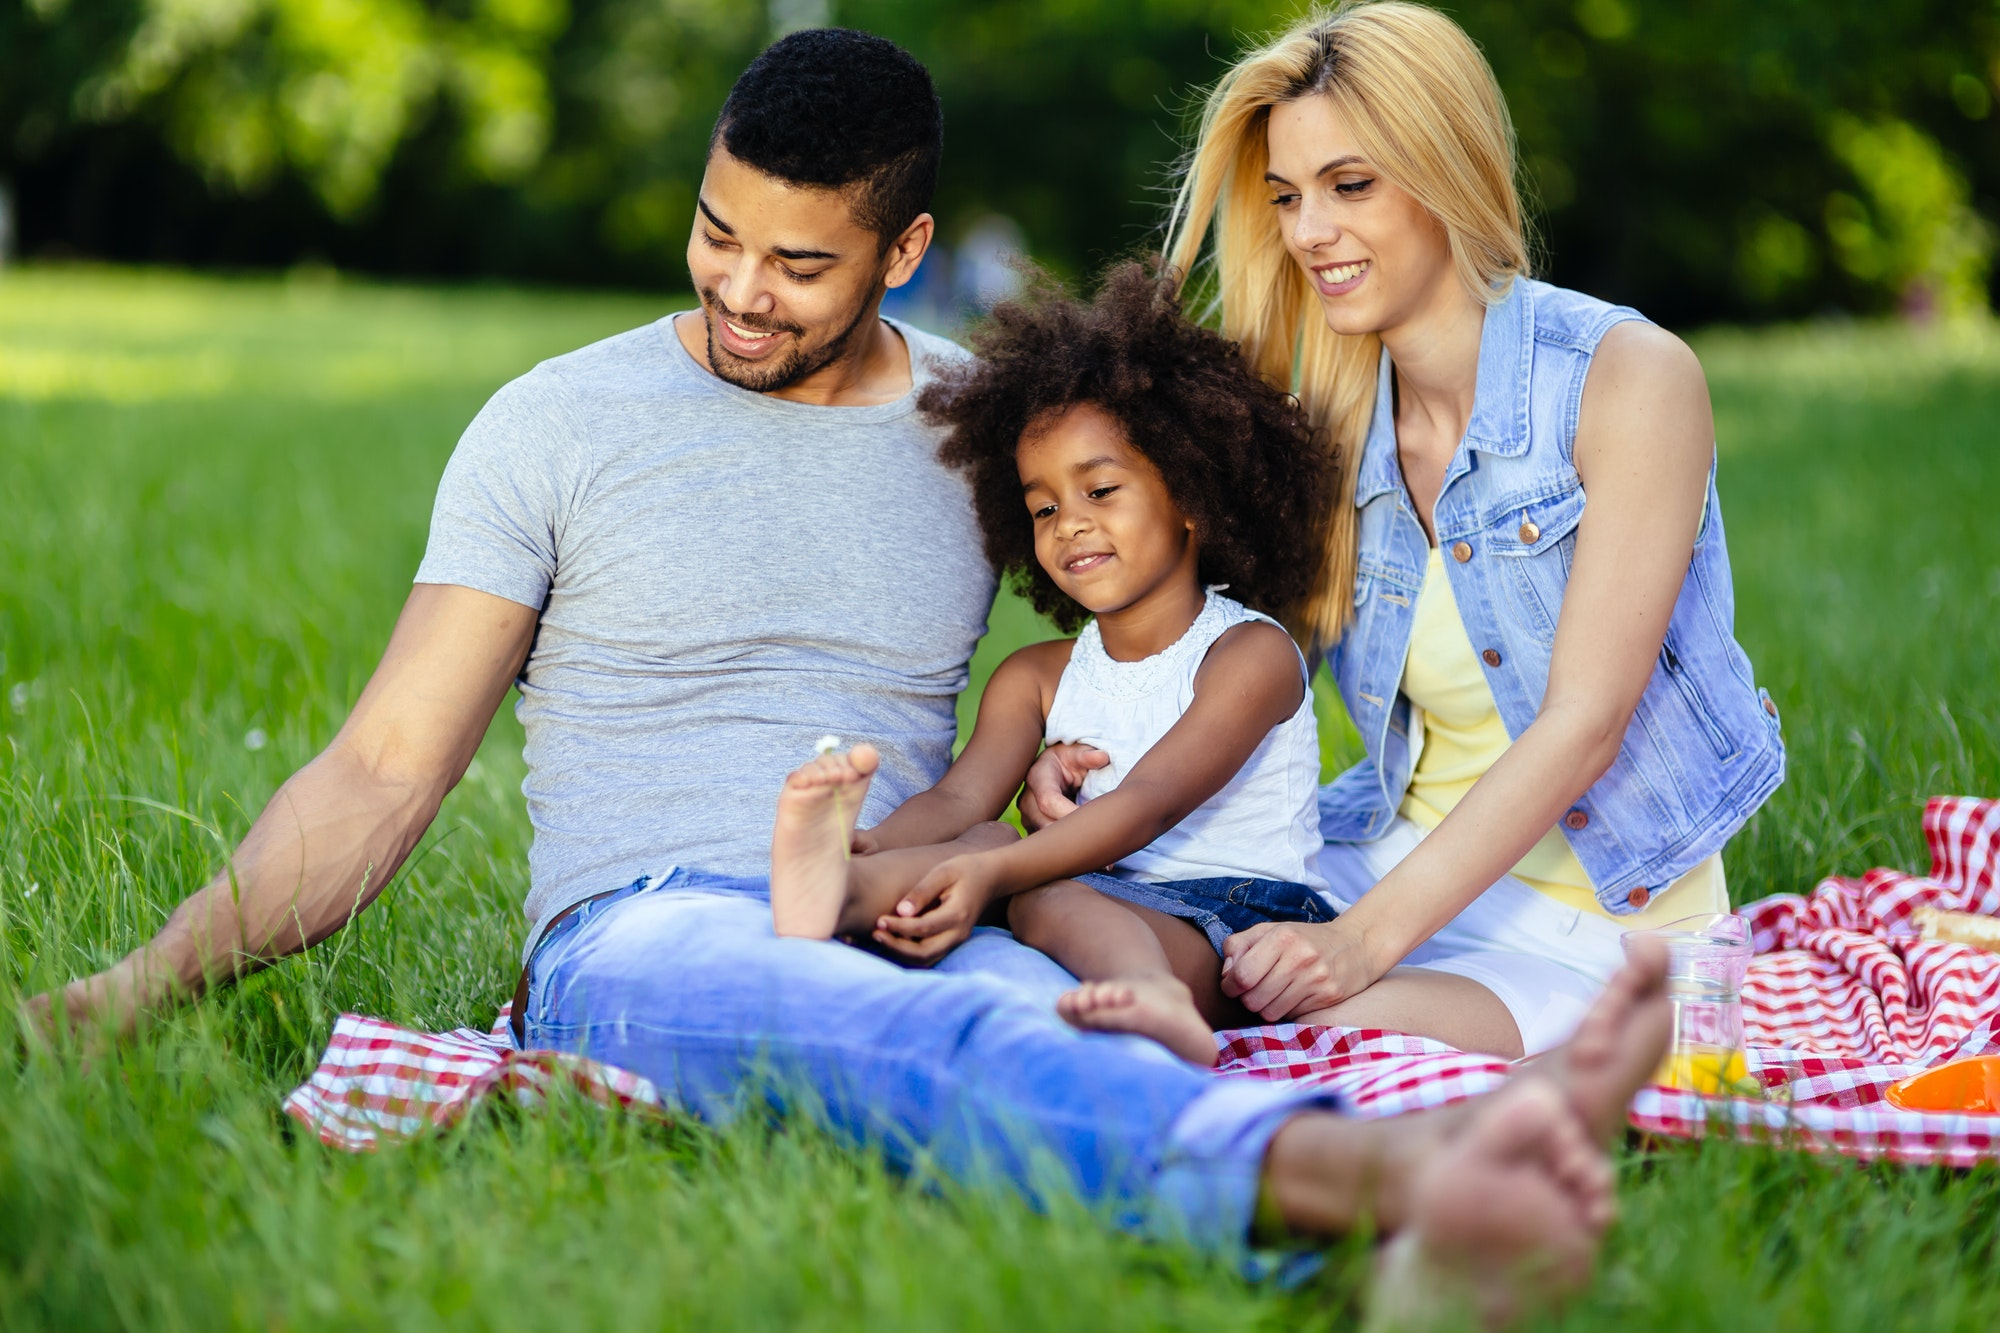 Family picnicking outdoors